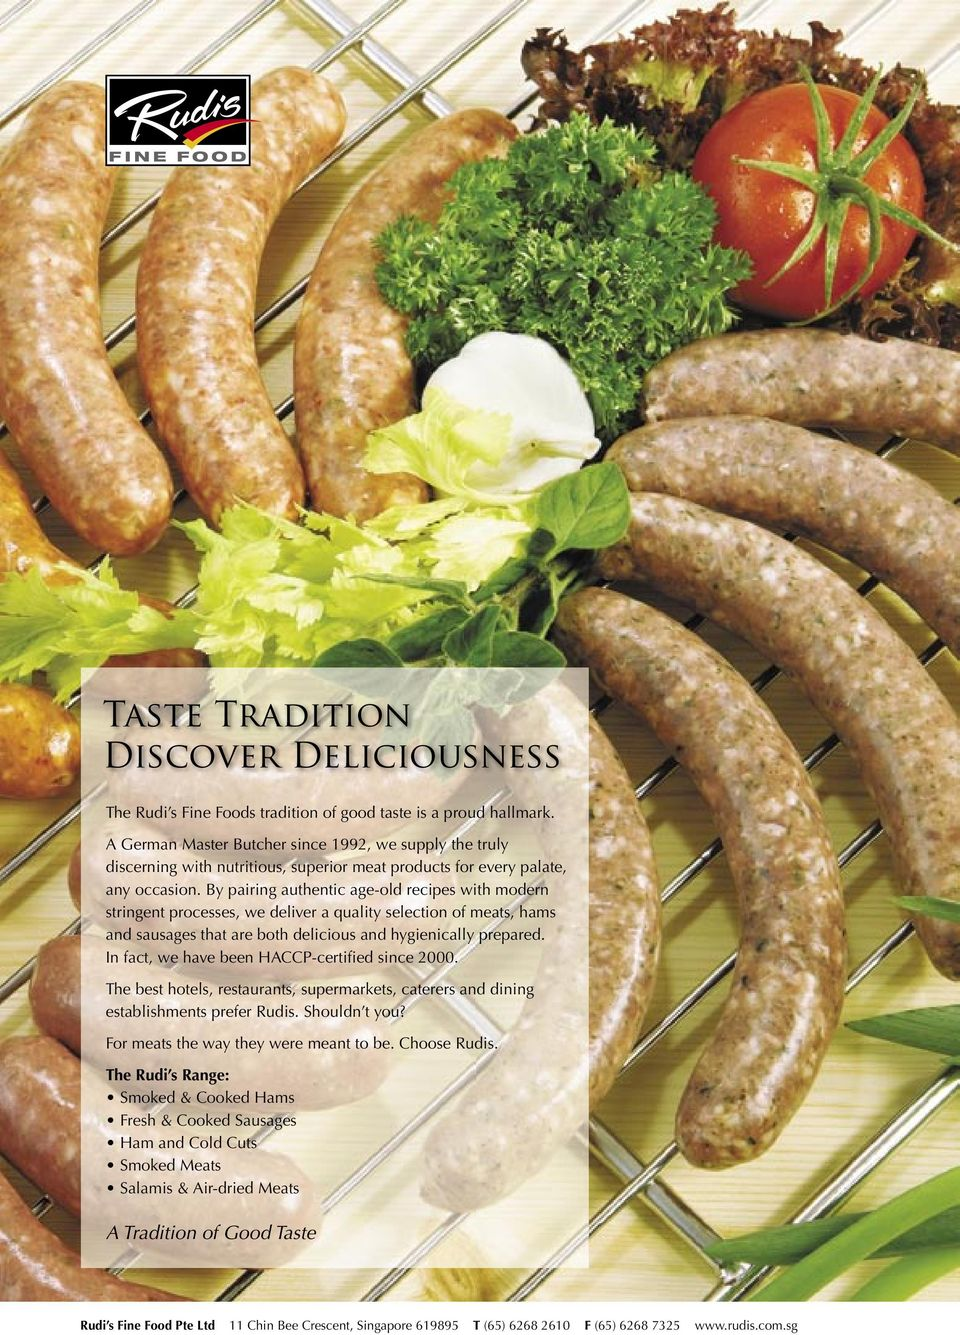 By pairing authentic age-old recipes with modern stringent processes, we deliver a quality selection of meats, hams and sausages that are both delicious and hygienically prepared.